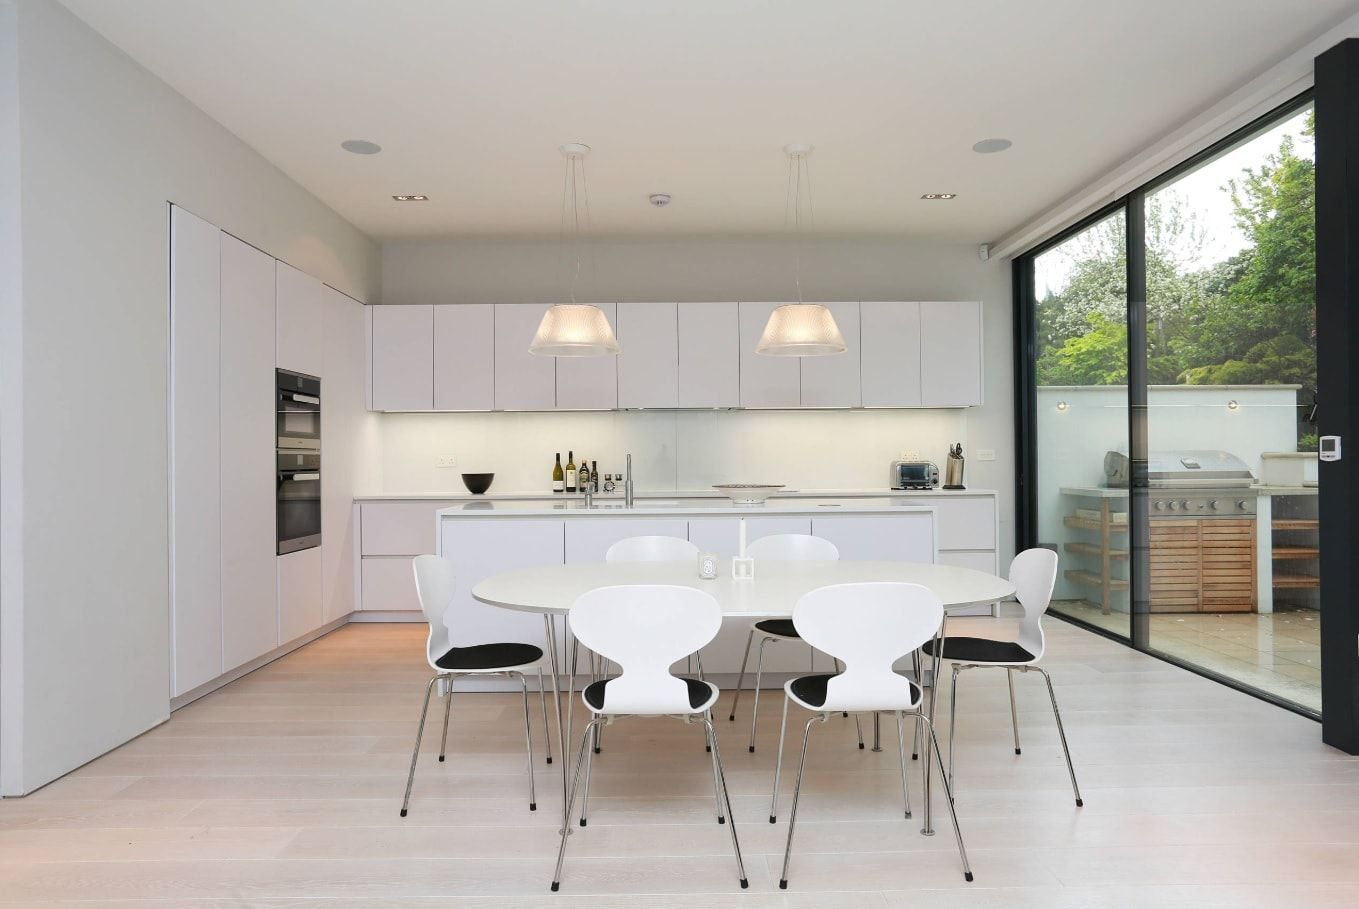 Things To Keep In Mind When Remodeling Your Kitchen. Modern kitchen furniture of modular arrangement